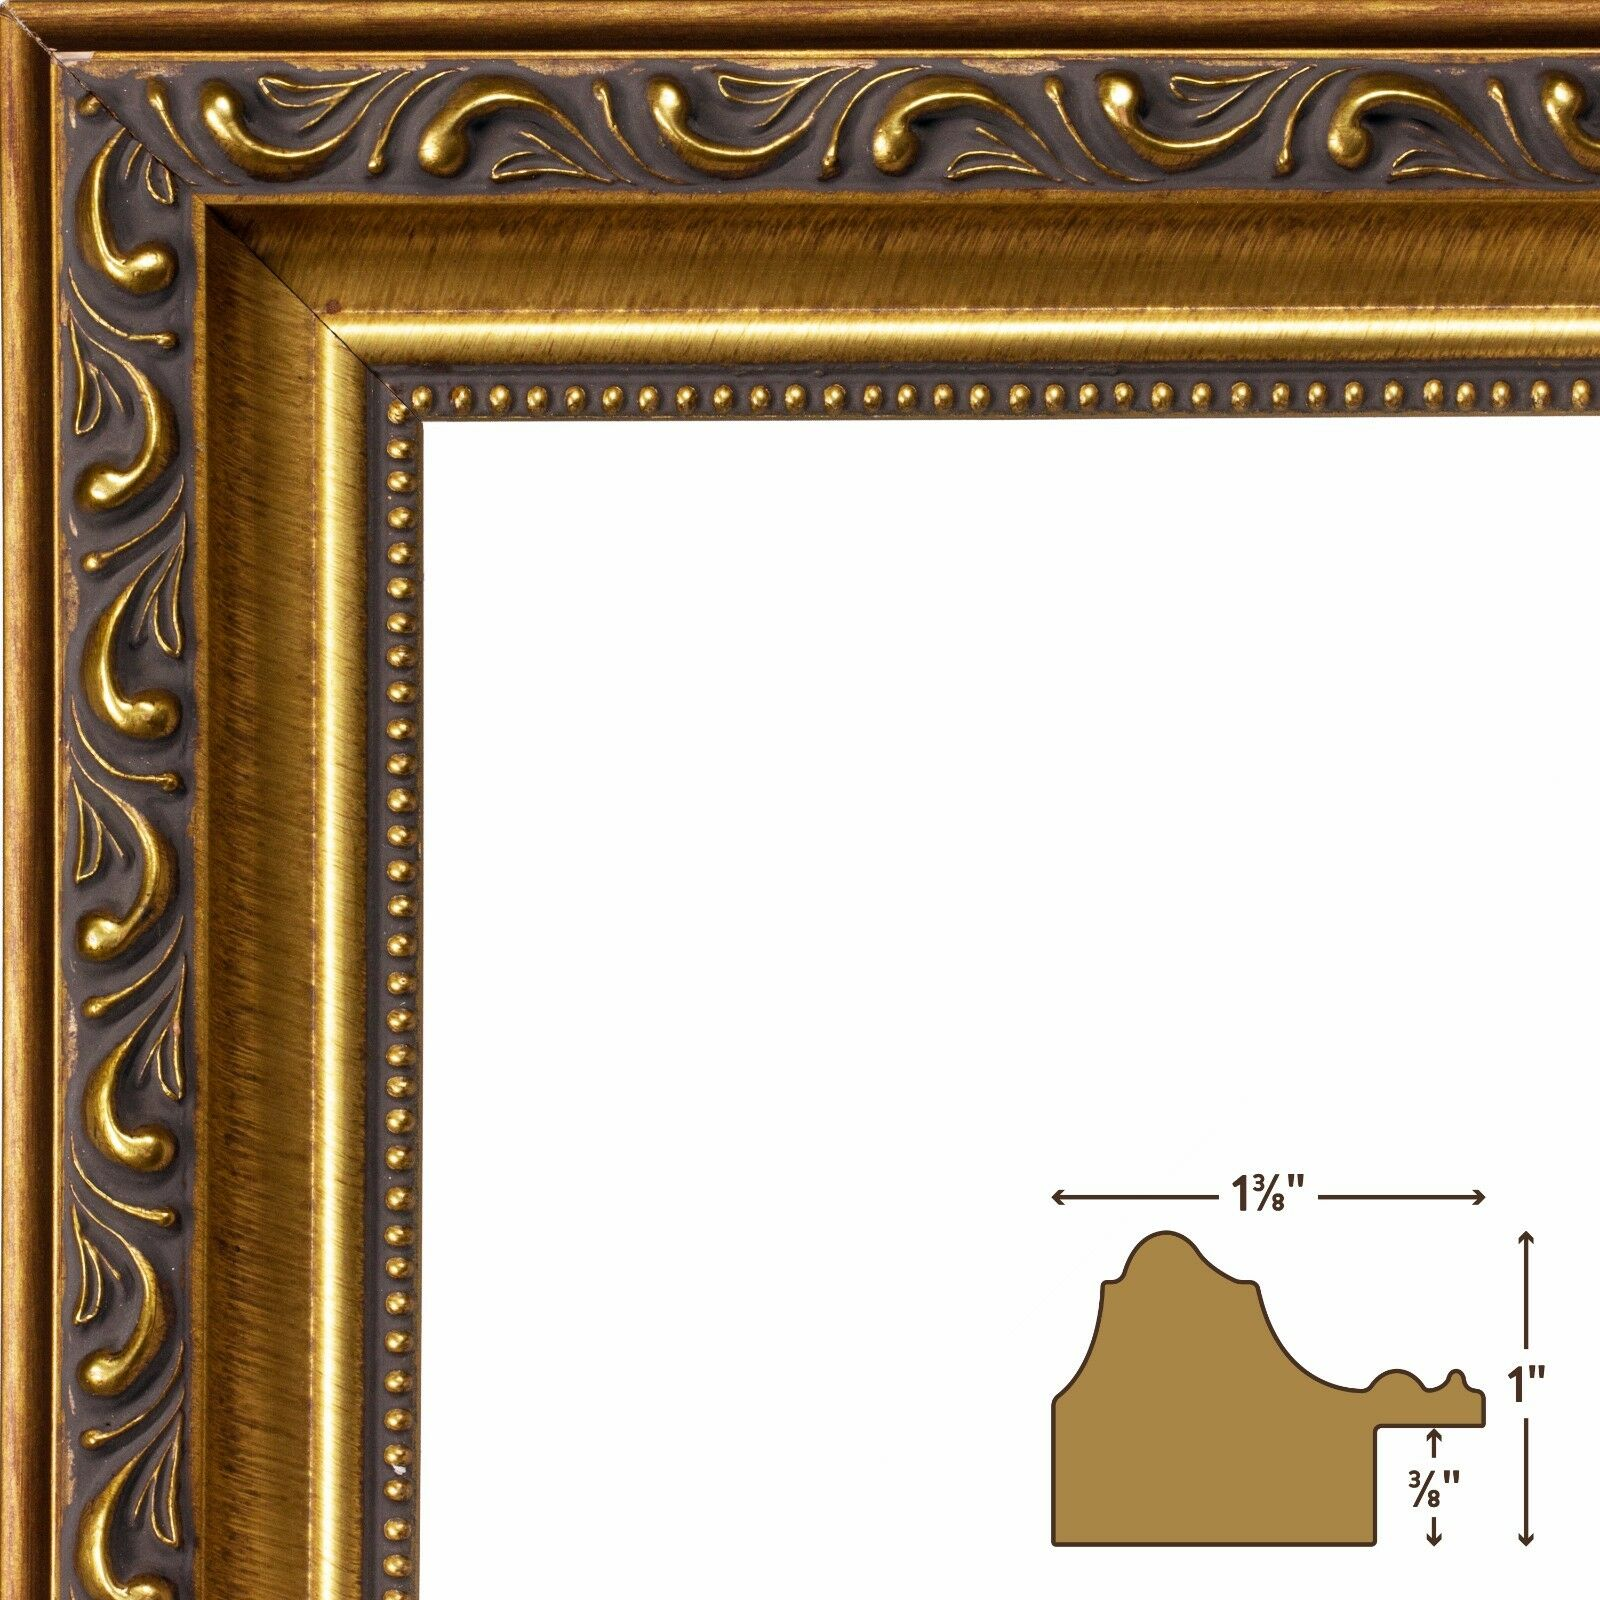 Craig frames ancient ornate antique gold picture frame 1 single picture 1 of 12 jeuxipadfo Gallery